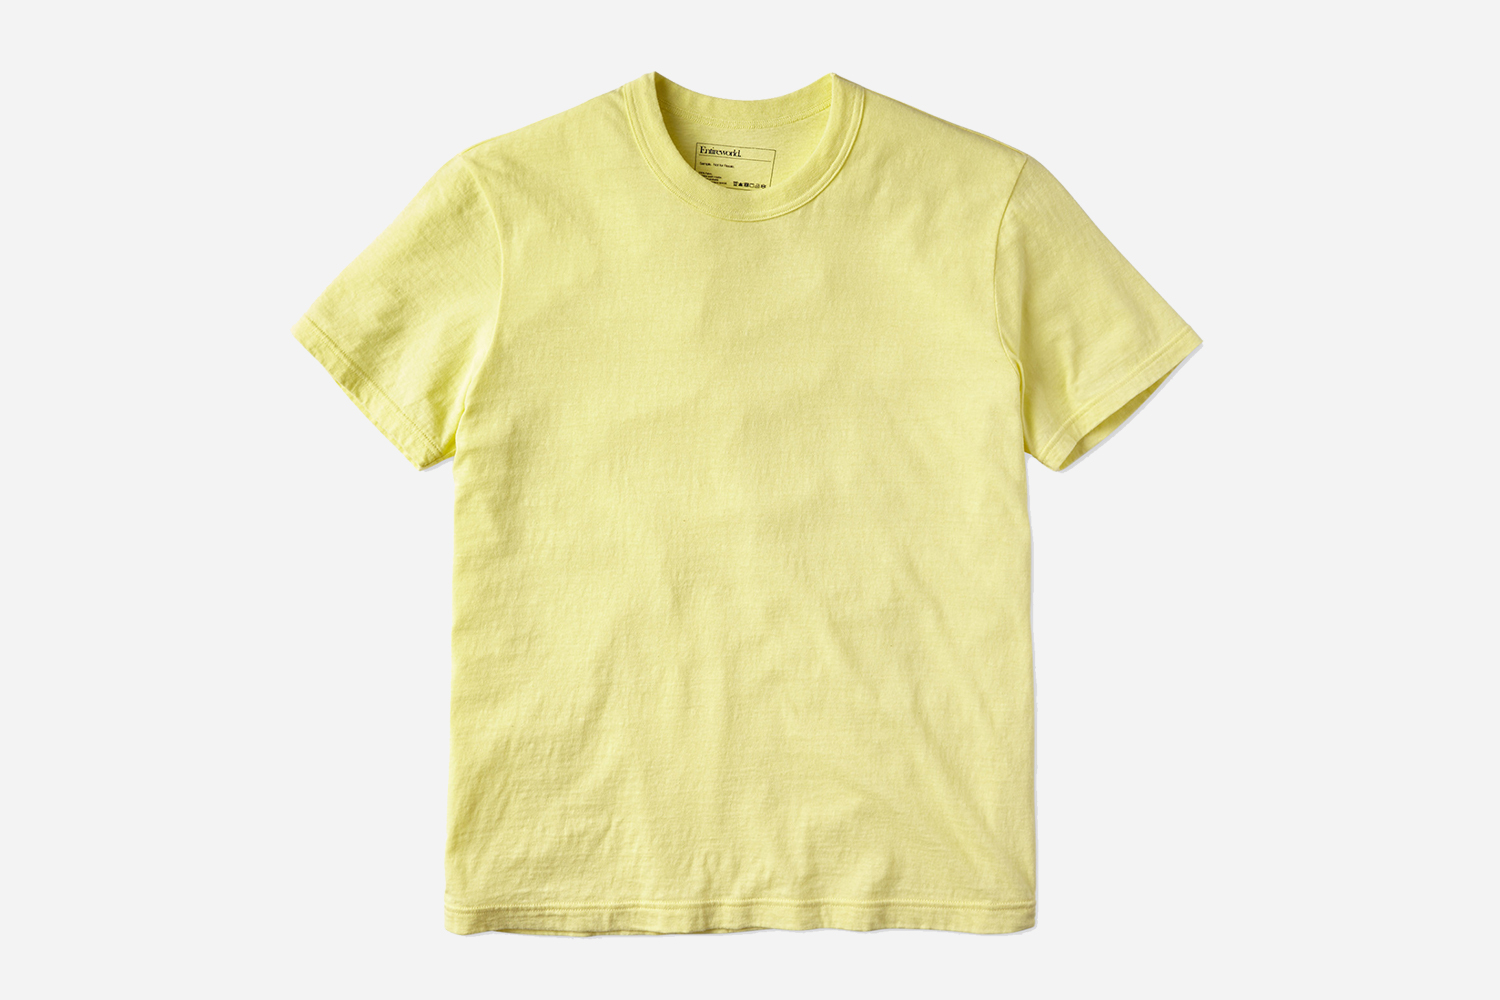 Entireworld Recycled Cotton T-Shirt